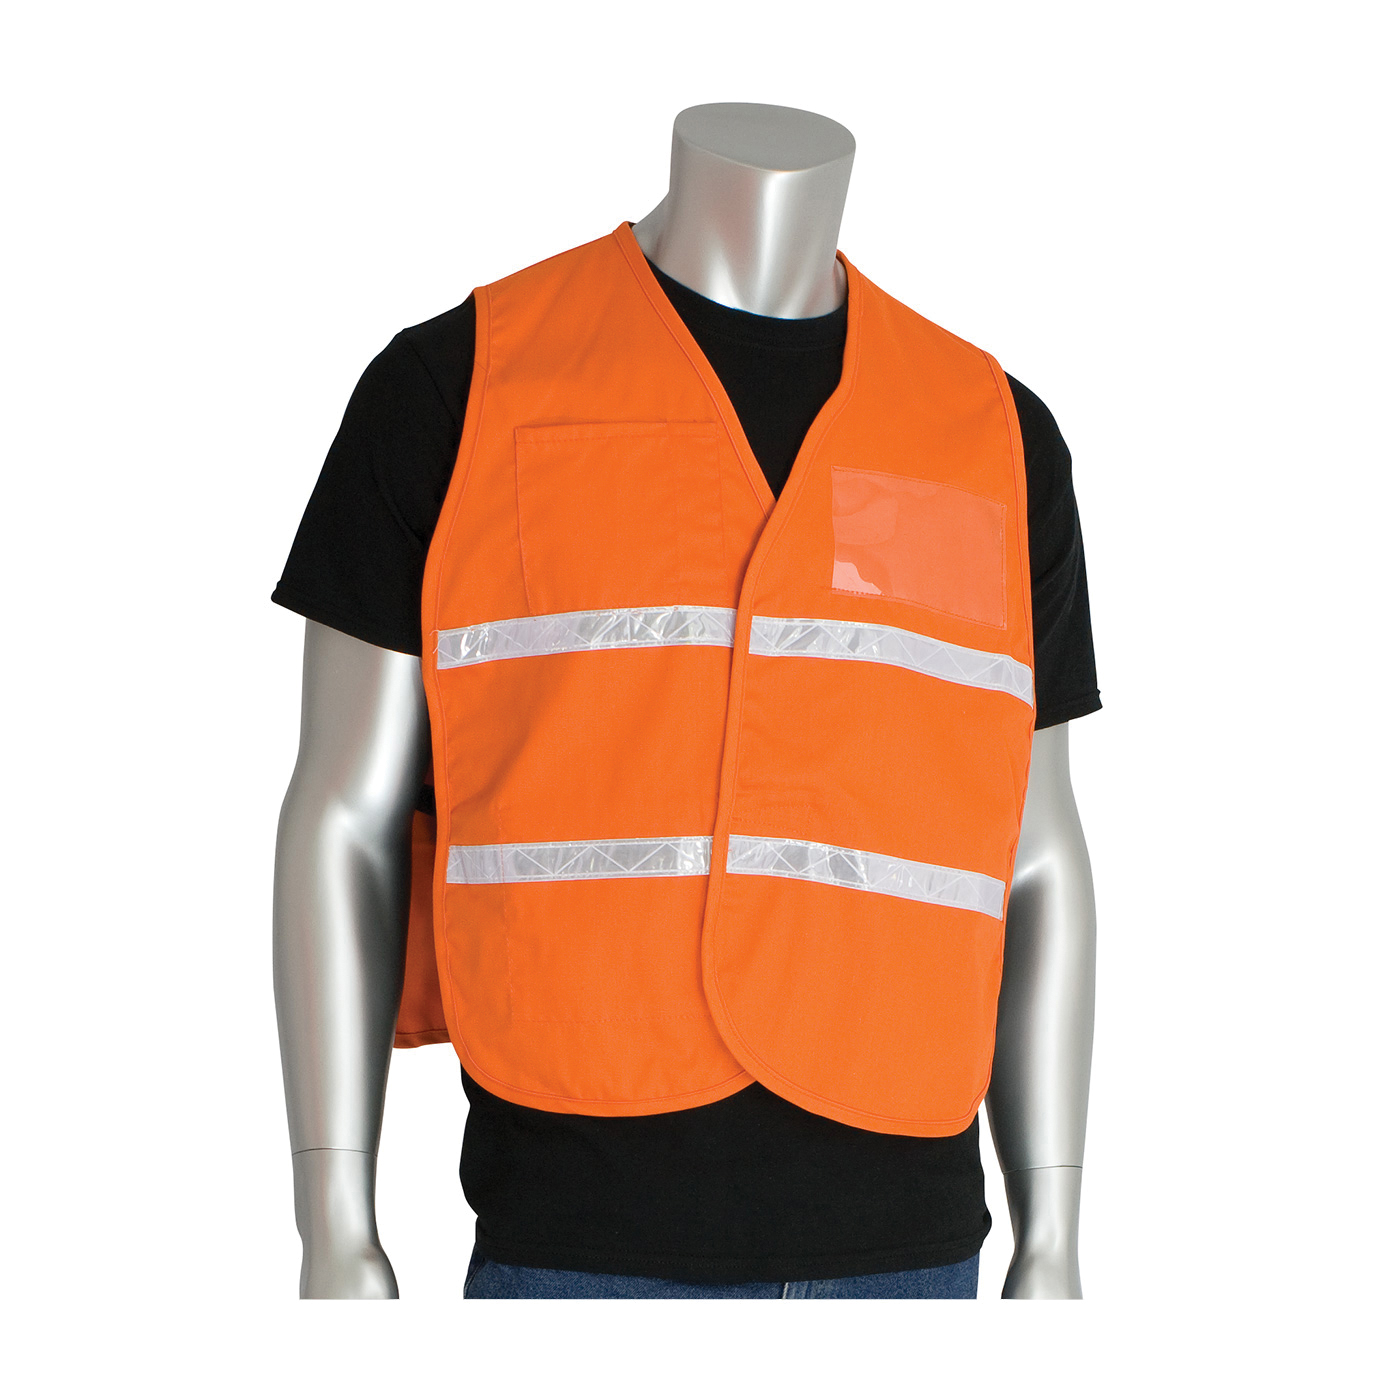 PIP® 300-1507/2X-3X Incident Command Vest, 2XL/3XL, Orange, Polyester, 42.1 in Chest, Hook and Loop Closure